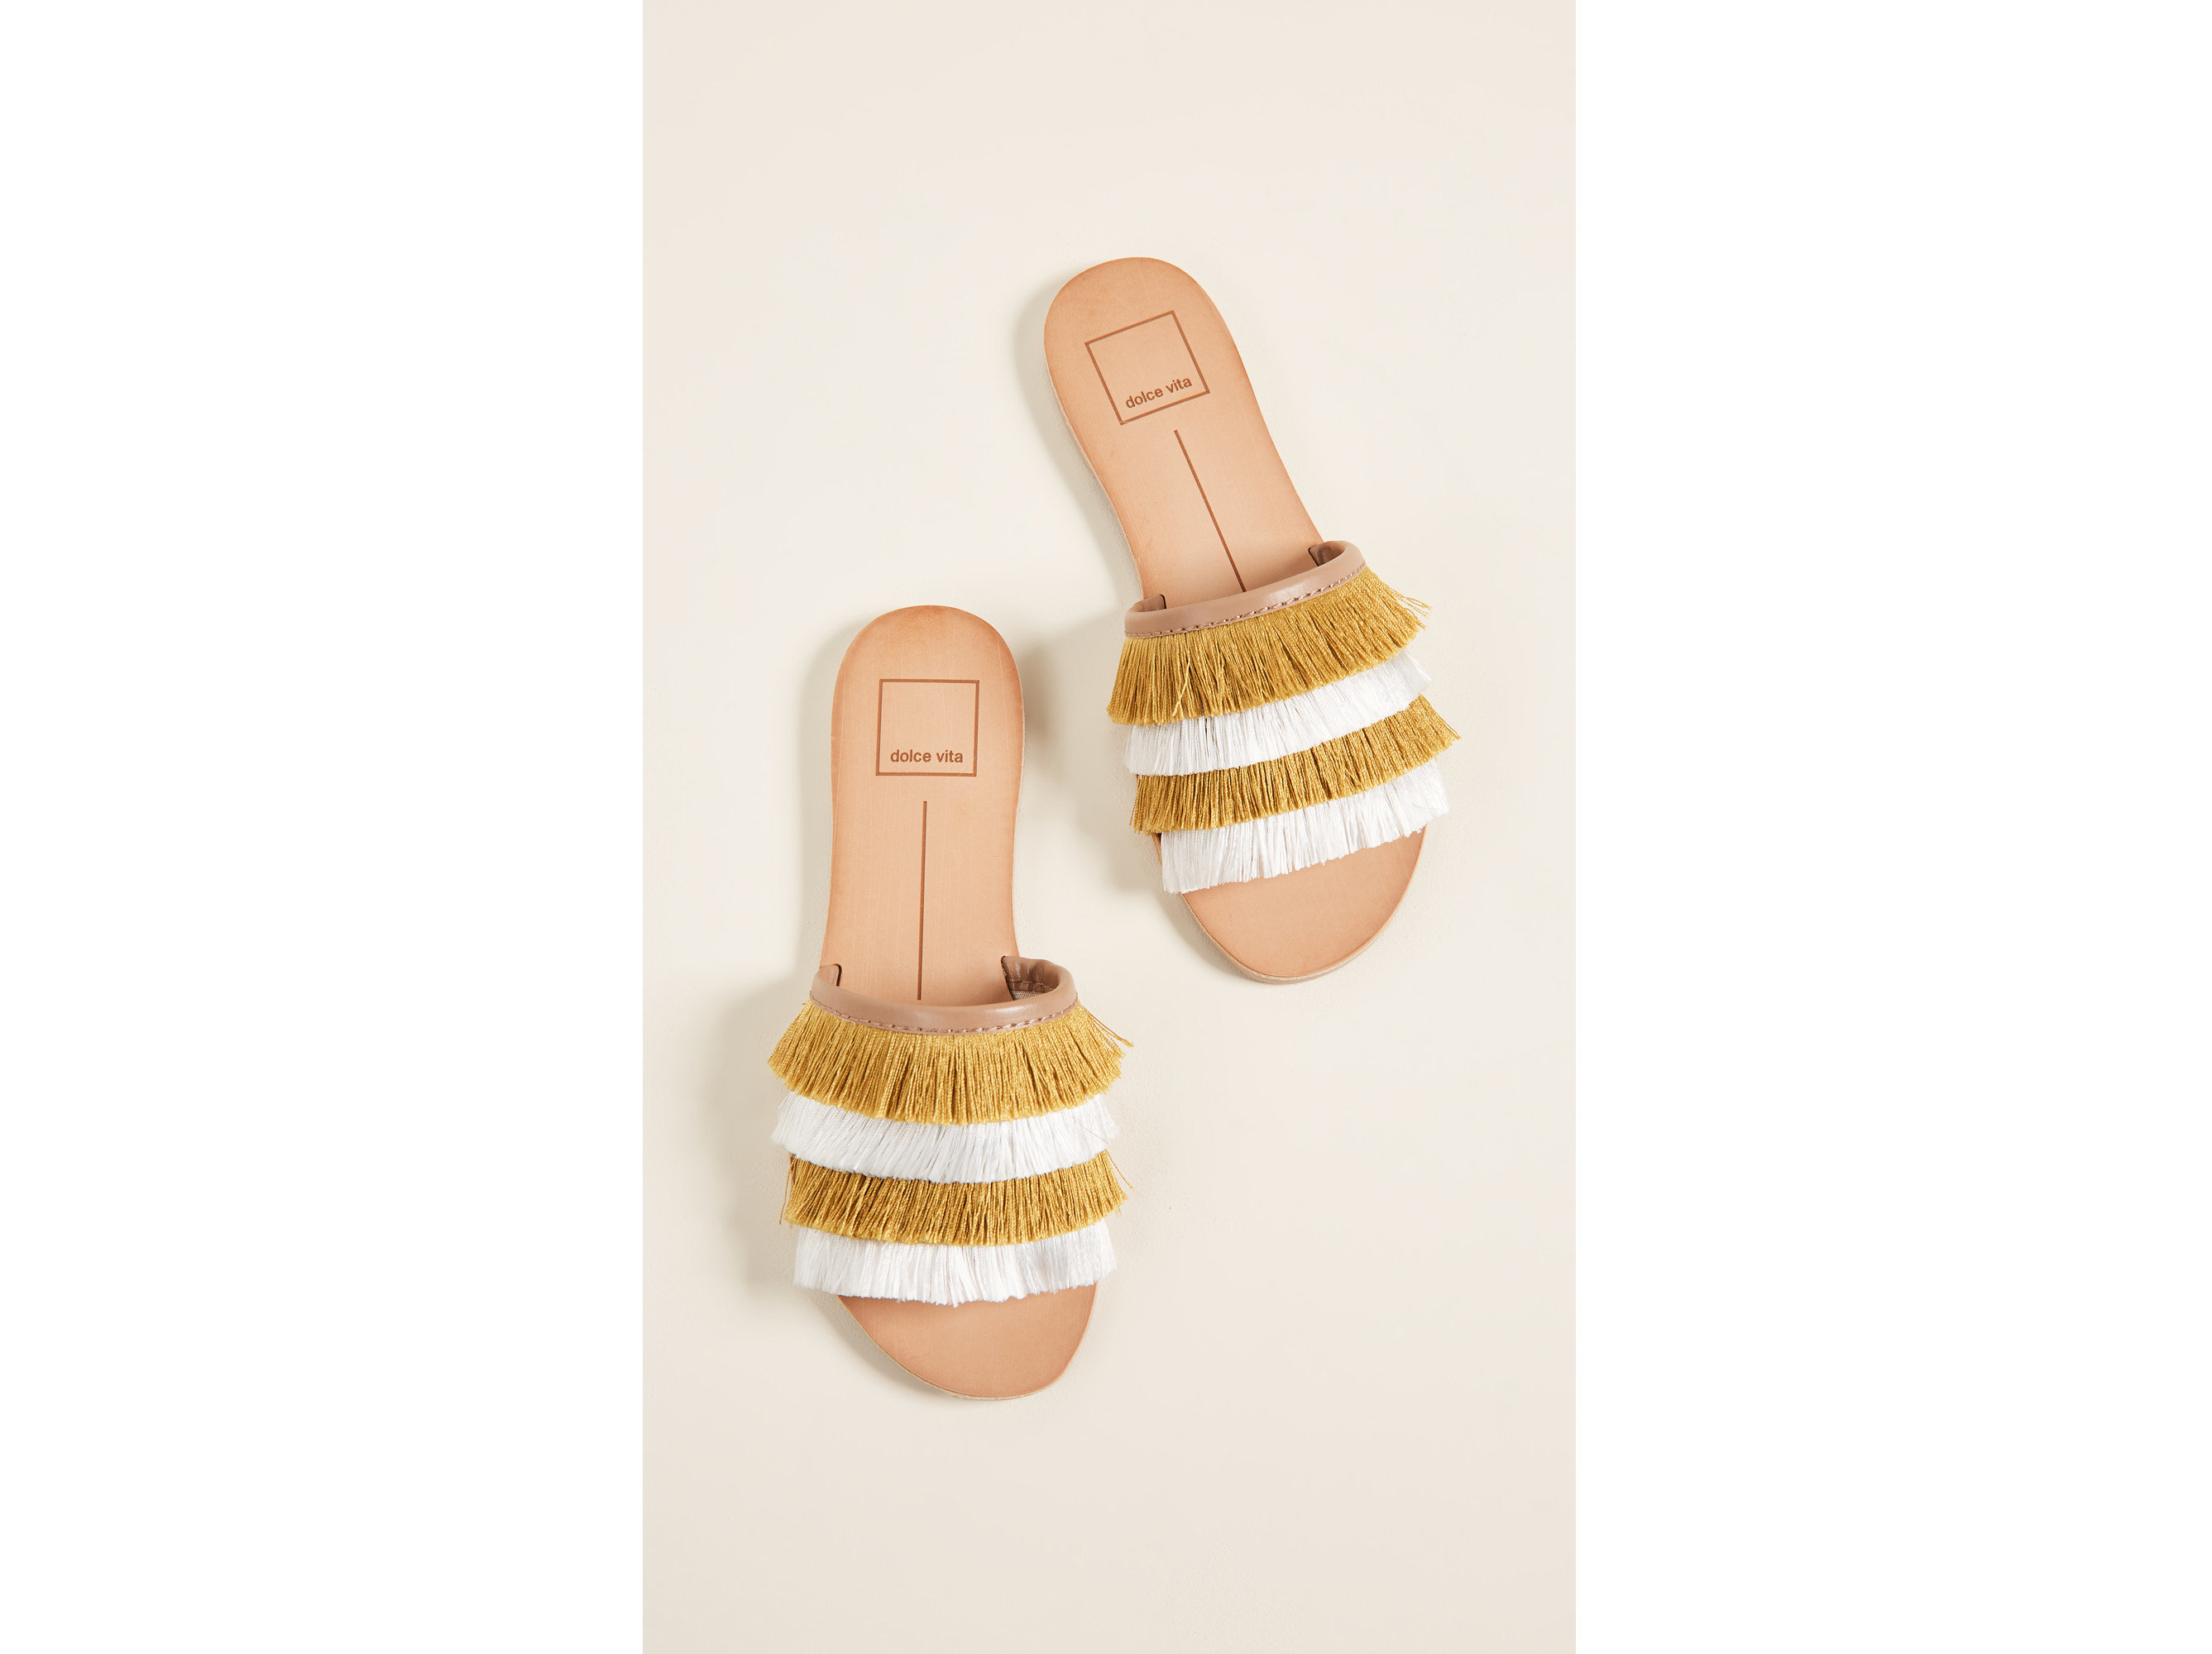 City Palm Springs Style + Design Travel Shop footwear shoe sandal outdoor shoe product design product beige